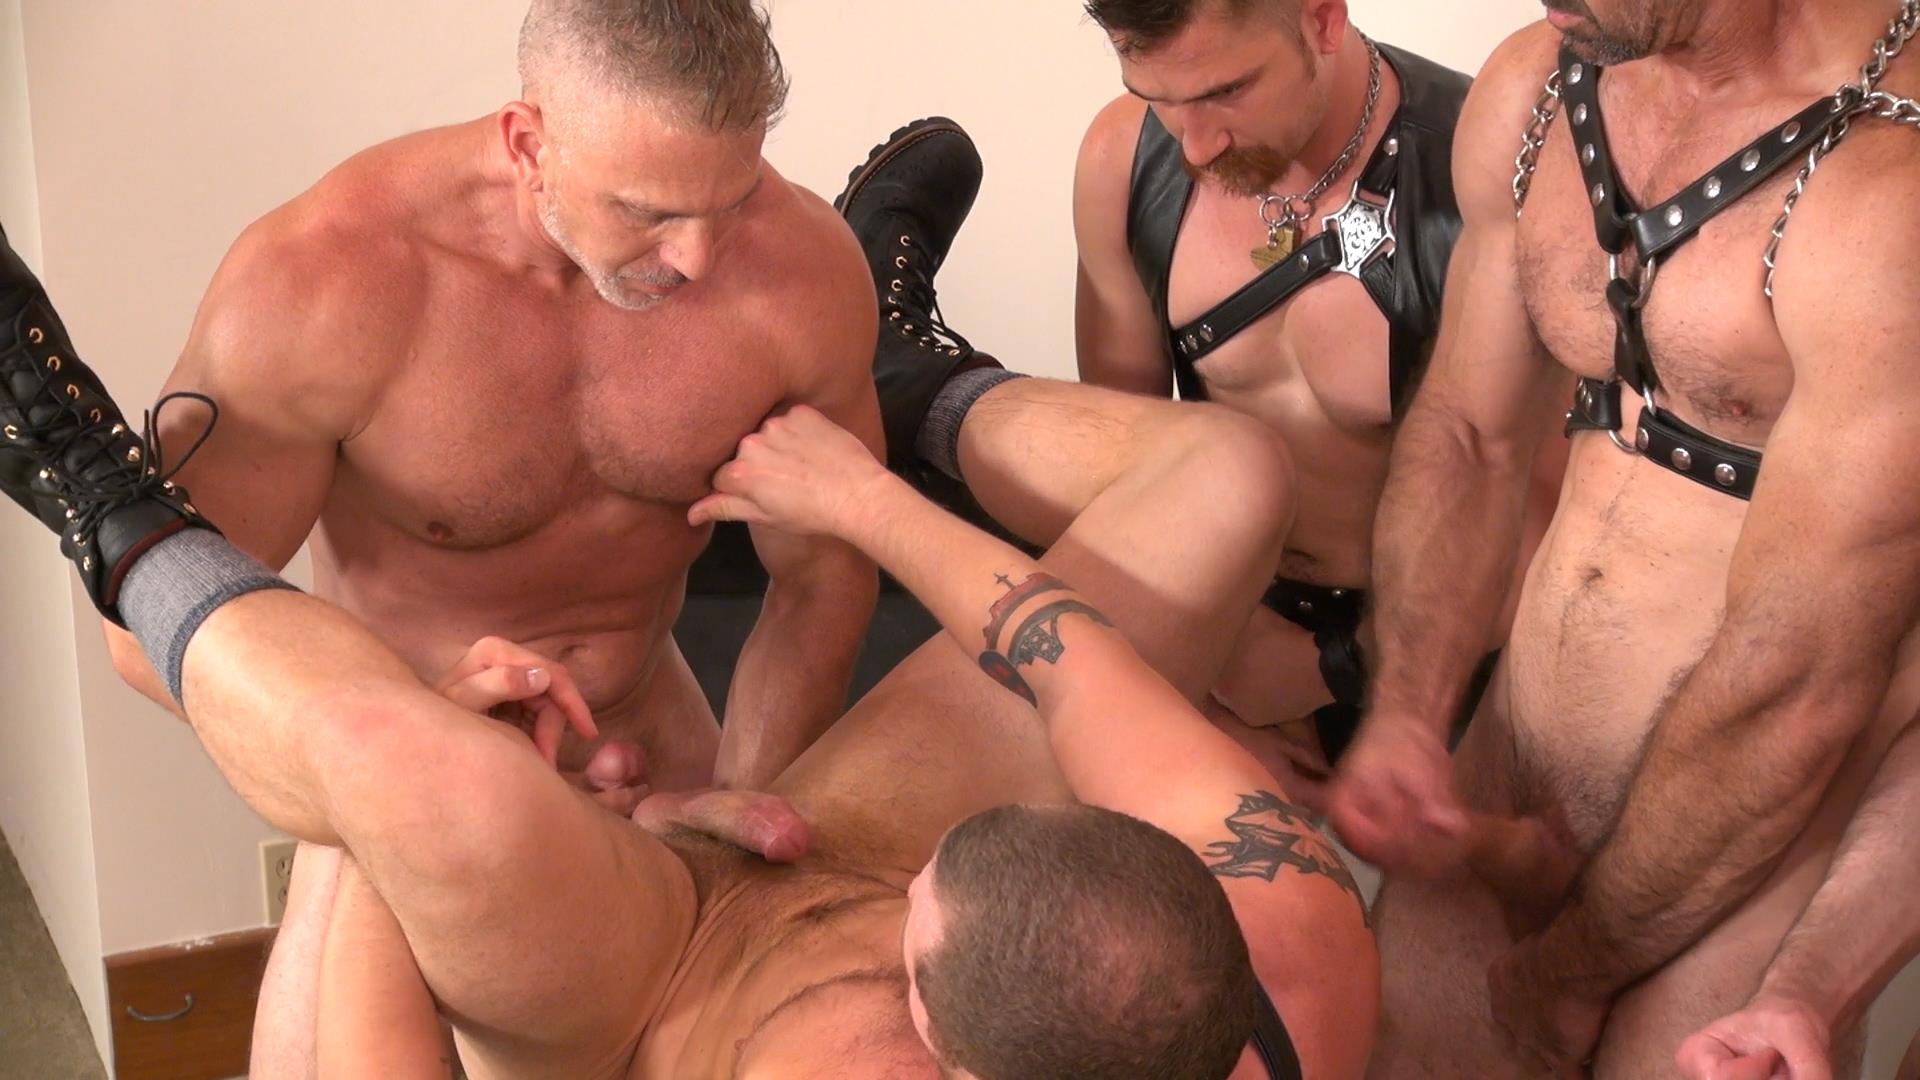 Raw-and-Rough-Jason-Mitchell-Steven-Richards-Sam-Dixon-Blue-Bailey-Dayton-OConnor-Jose-del-Toro-Bareback-Bathhouse-Amateur-Gay-Porn-08 Blue Bailey Getting Fucked Bareback By 5 Guys At A Bathhouse